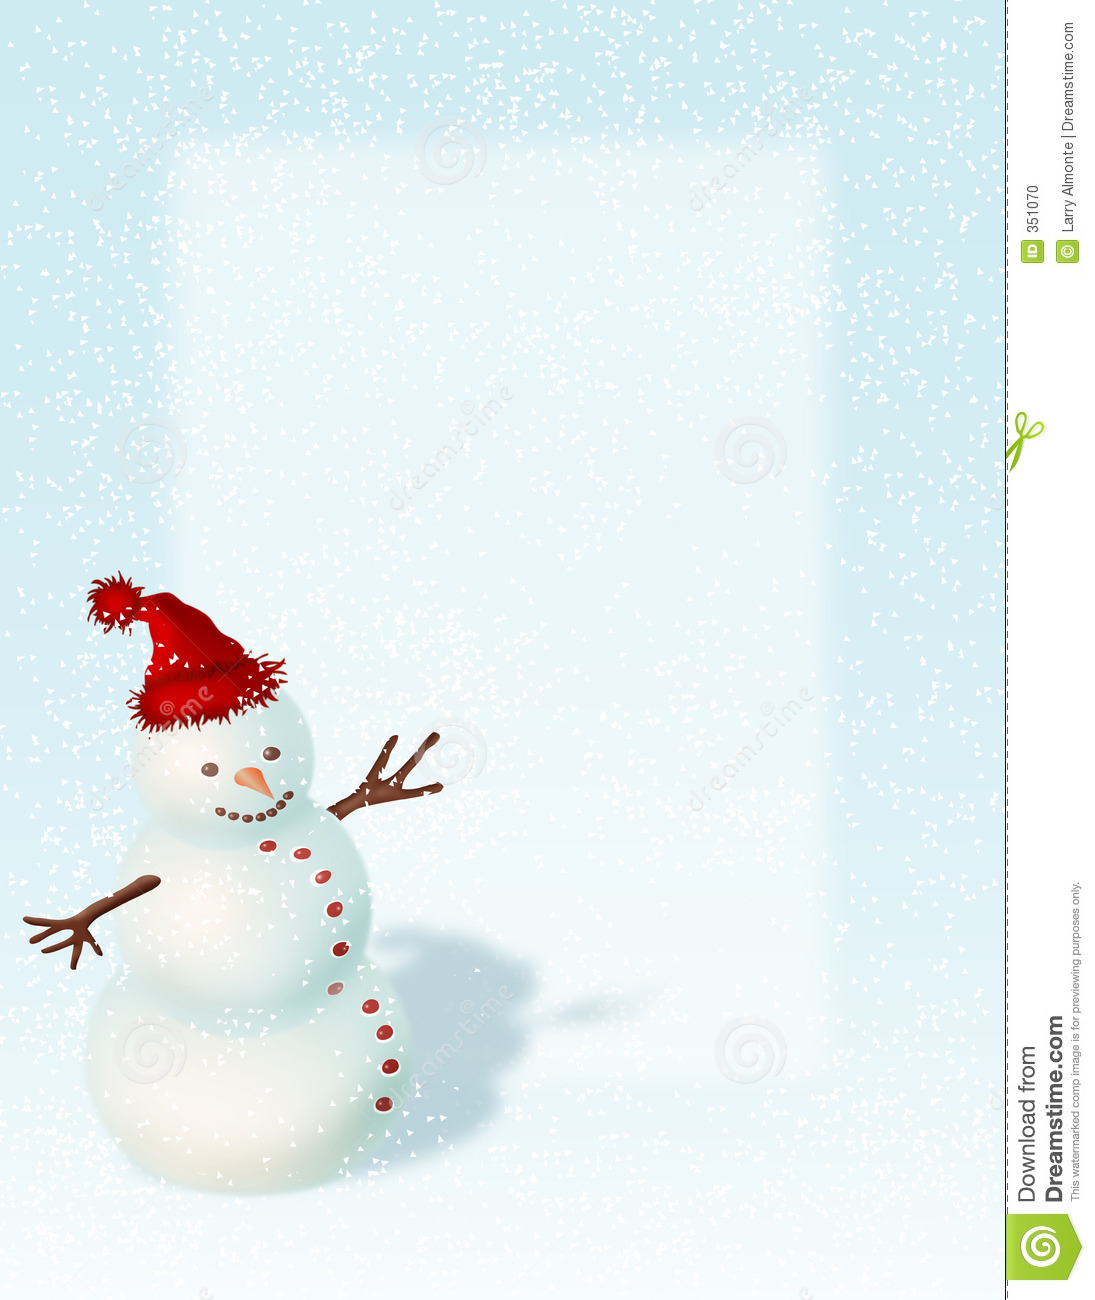 Snowman with red hat suitable for backgrounds, flliers and posters.